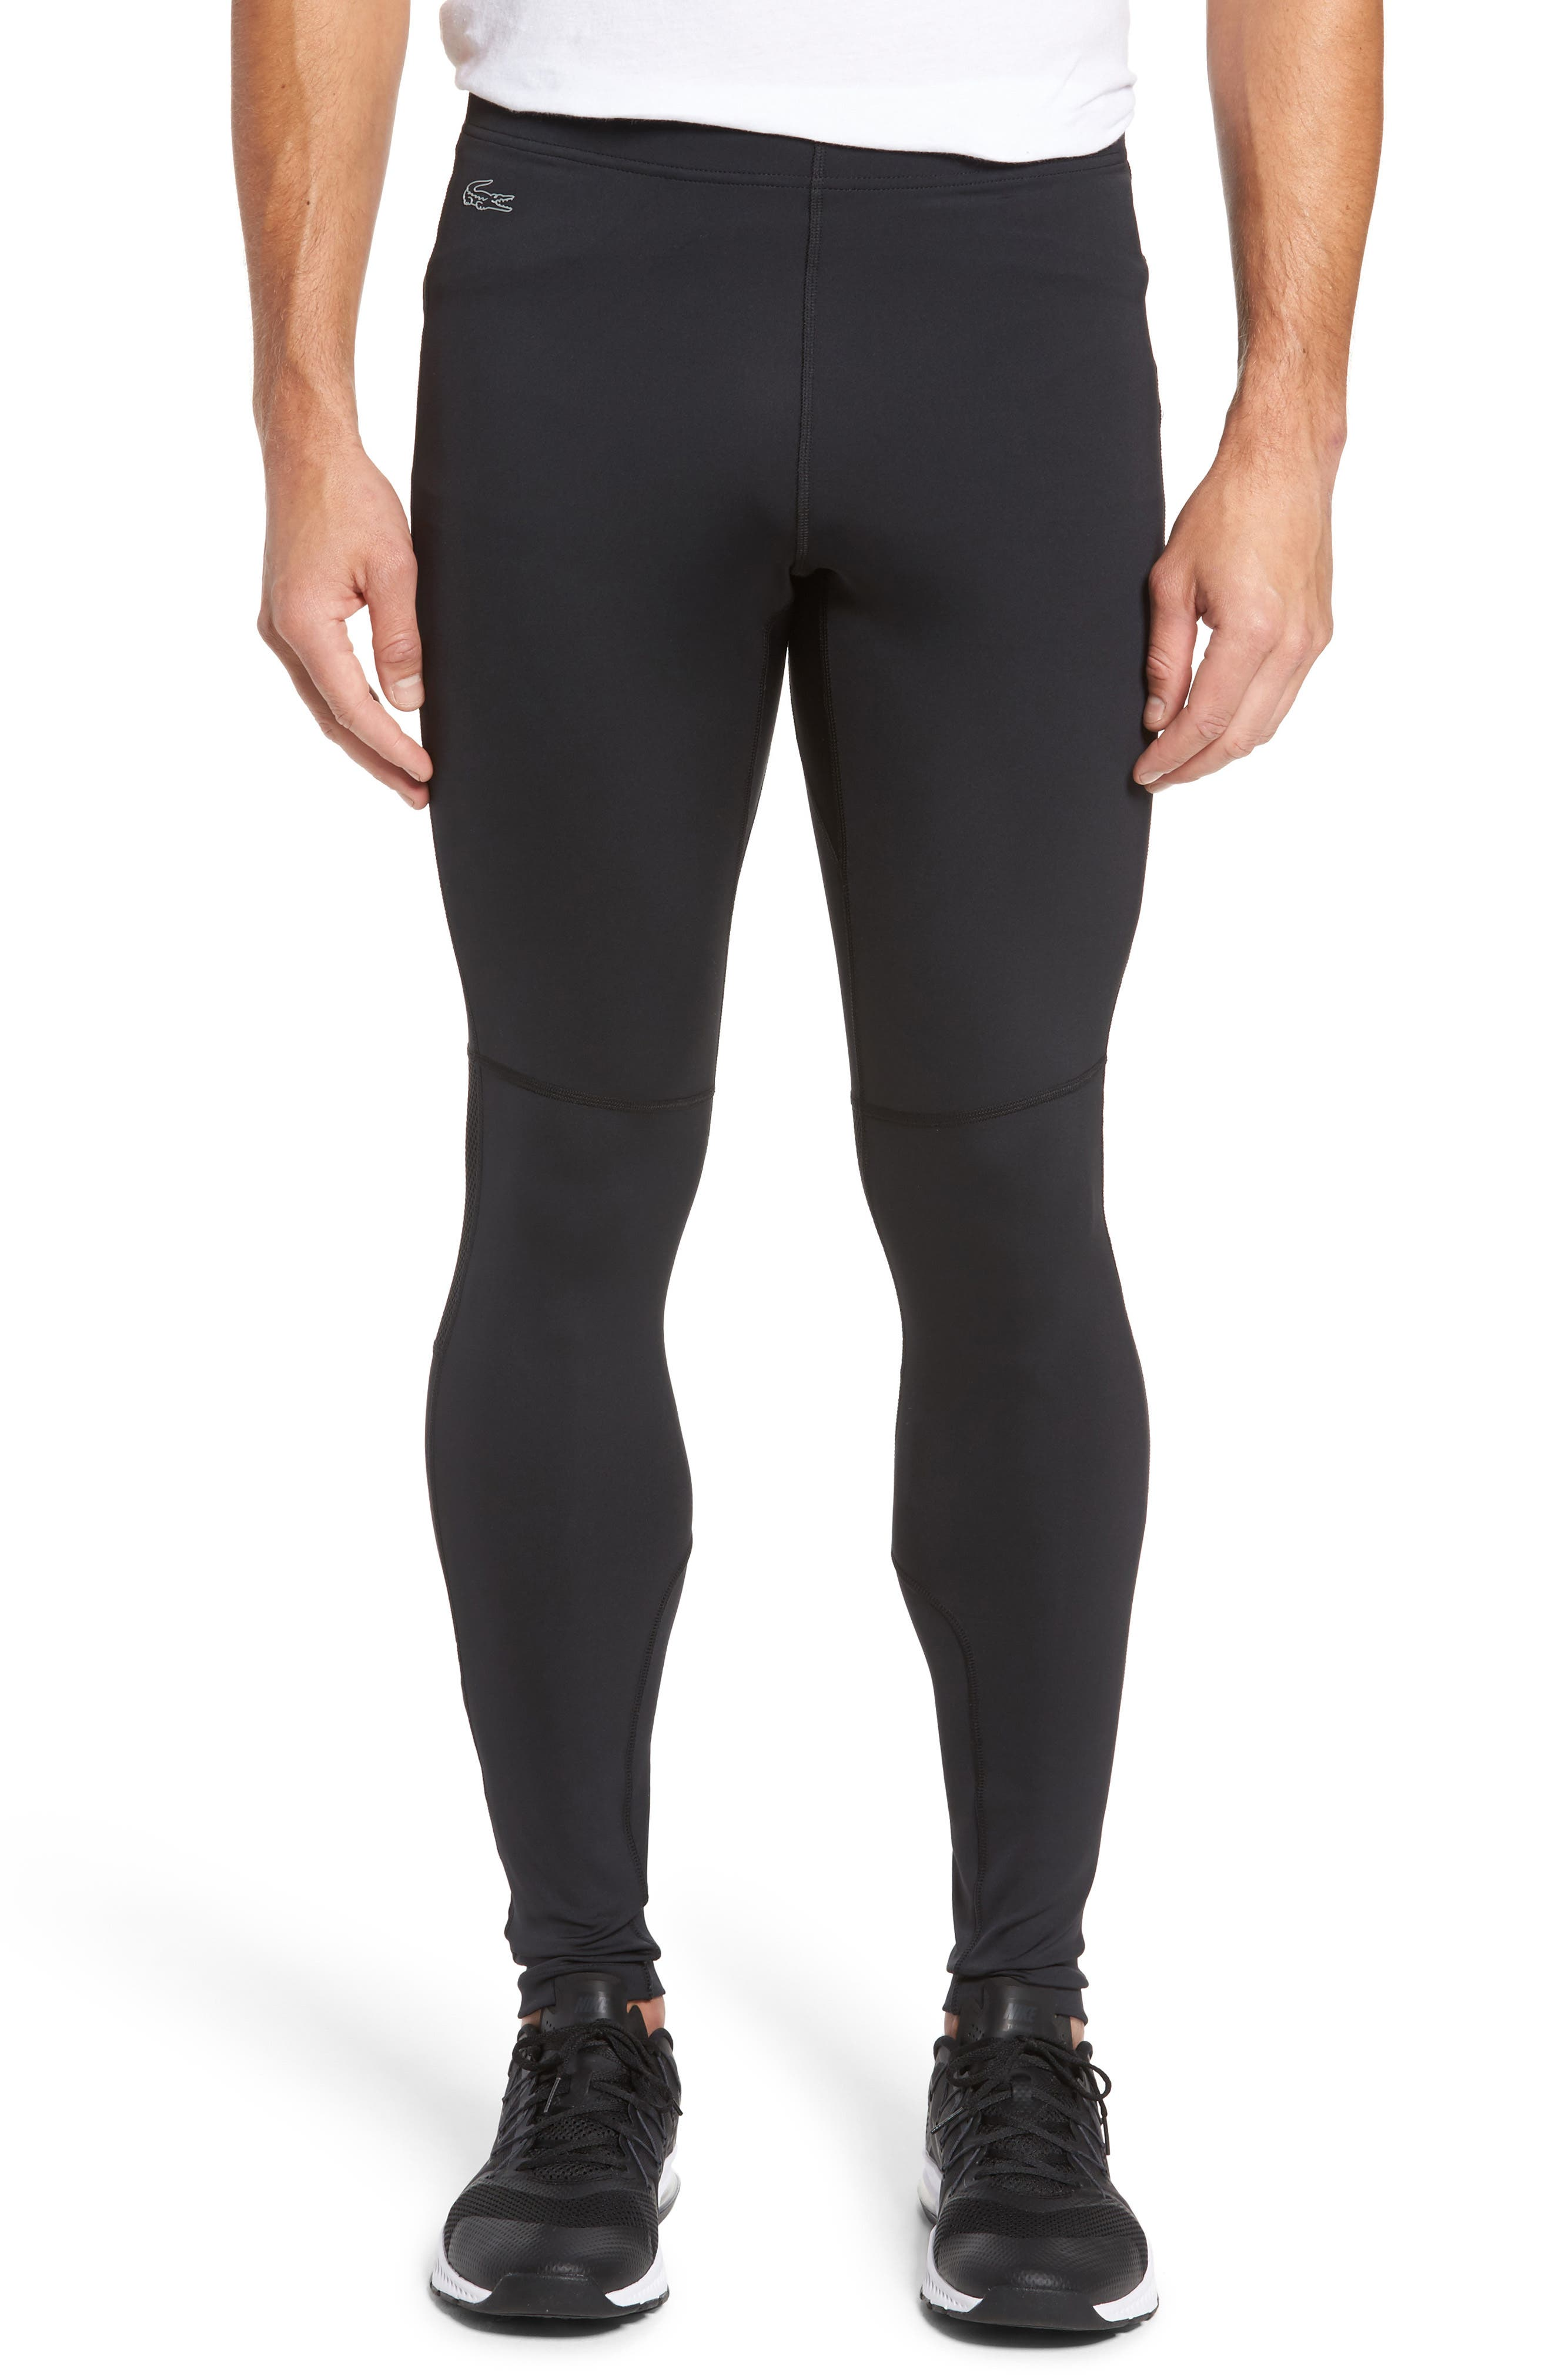 LACOSTE Performance Tights